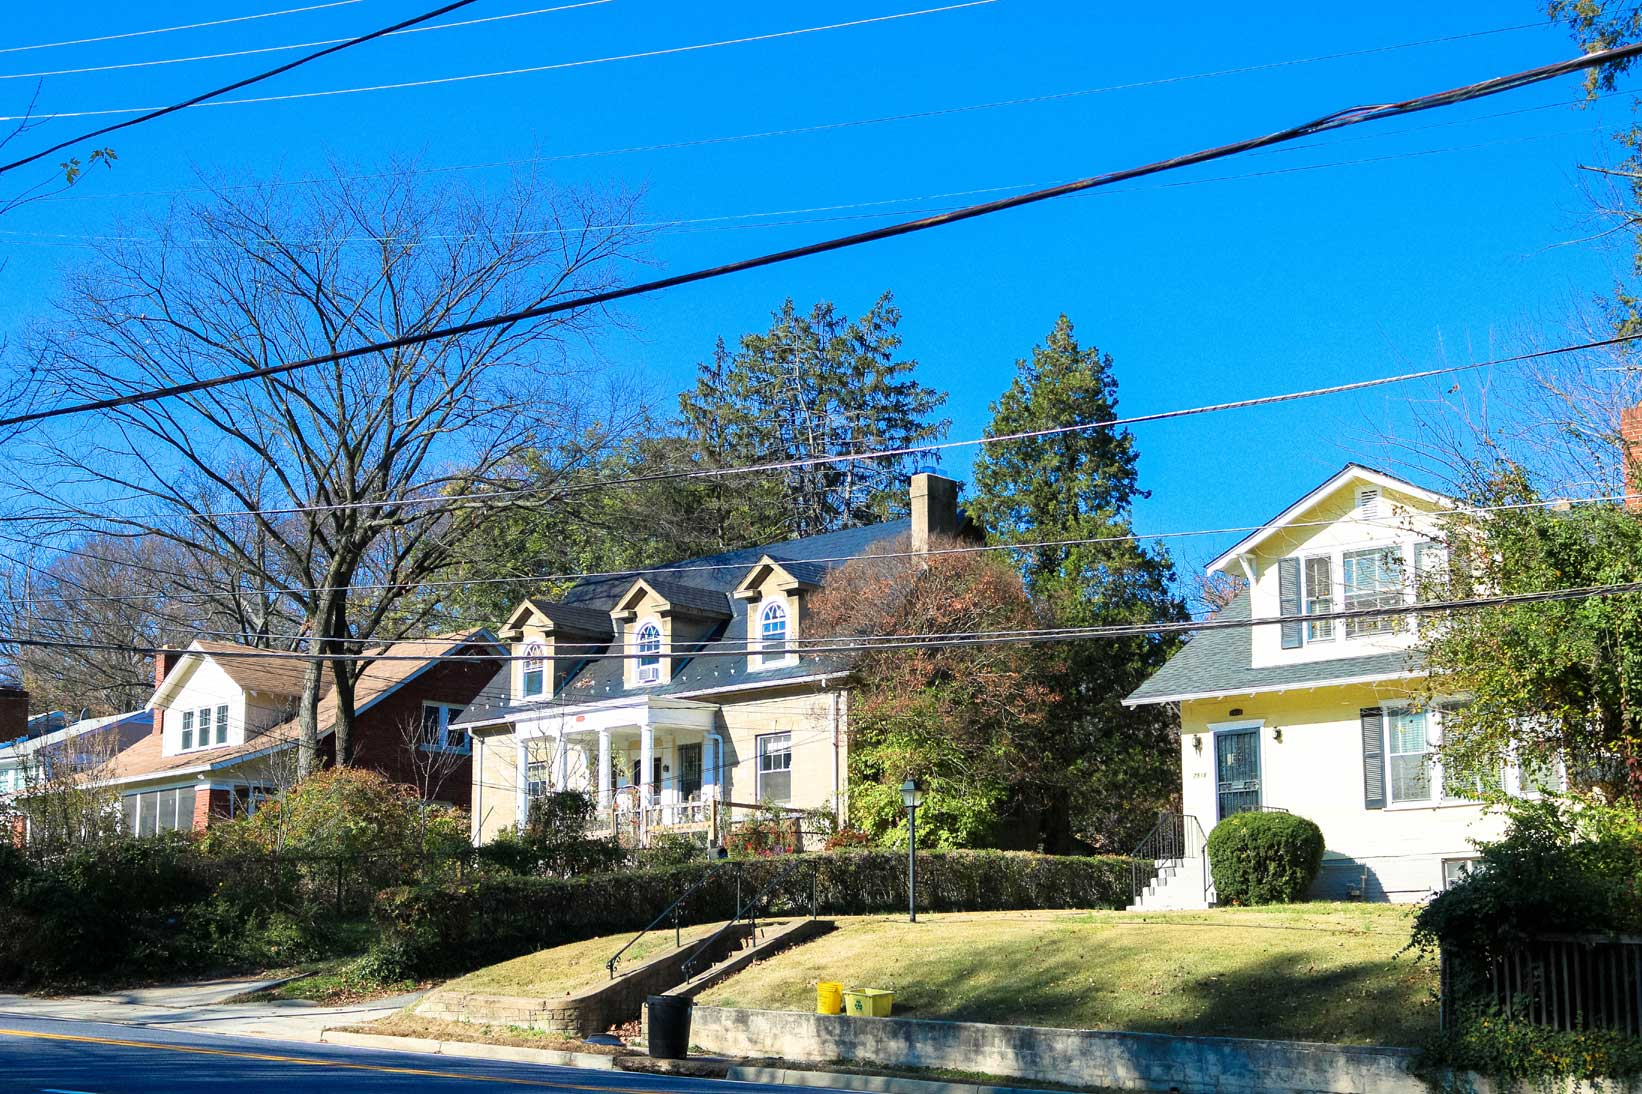 Residential street with single family homes in Takoma Park, MD